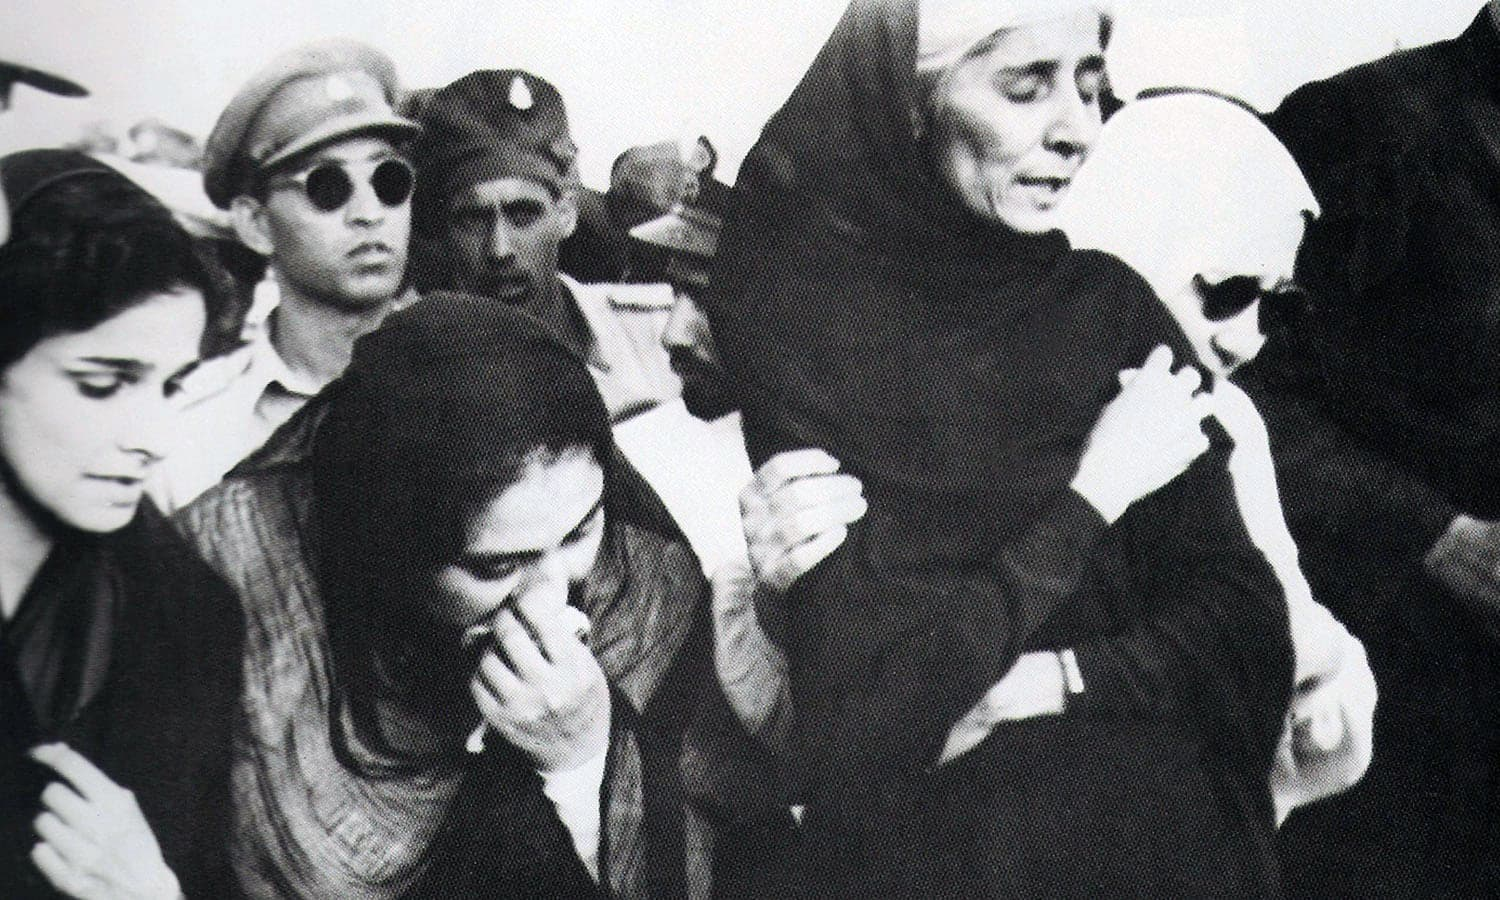 Dina Wadia (extreme left), Quaid-i-Azam Mohammad Ali Jinnah's only child, flew in from Delhi to attend her father's funeral. —Photo: The Press Information Department, Ministry of Information, Broadcasting & National Heritage, Islamabad